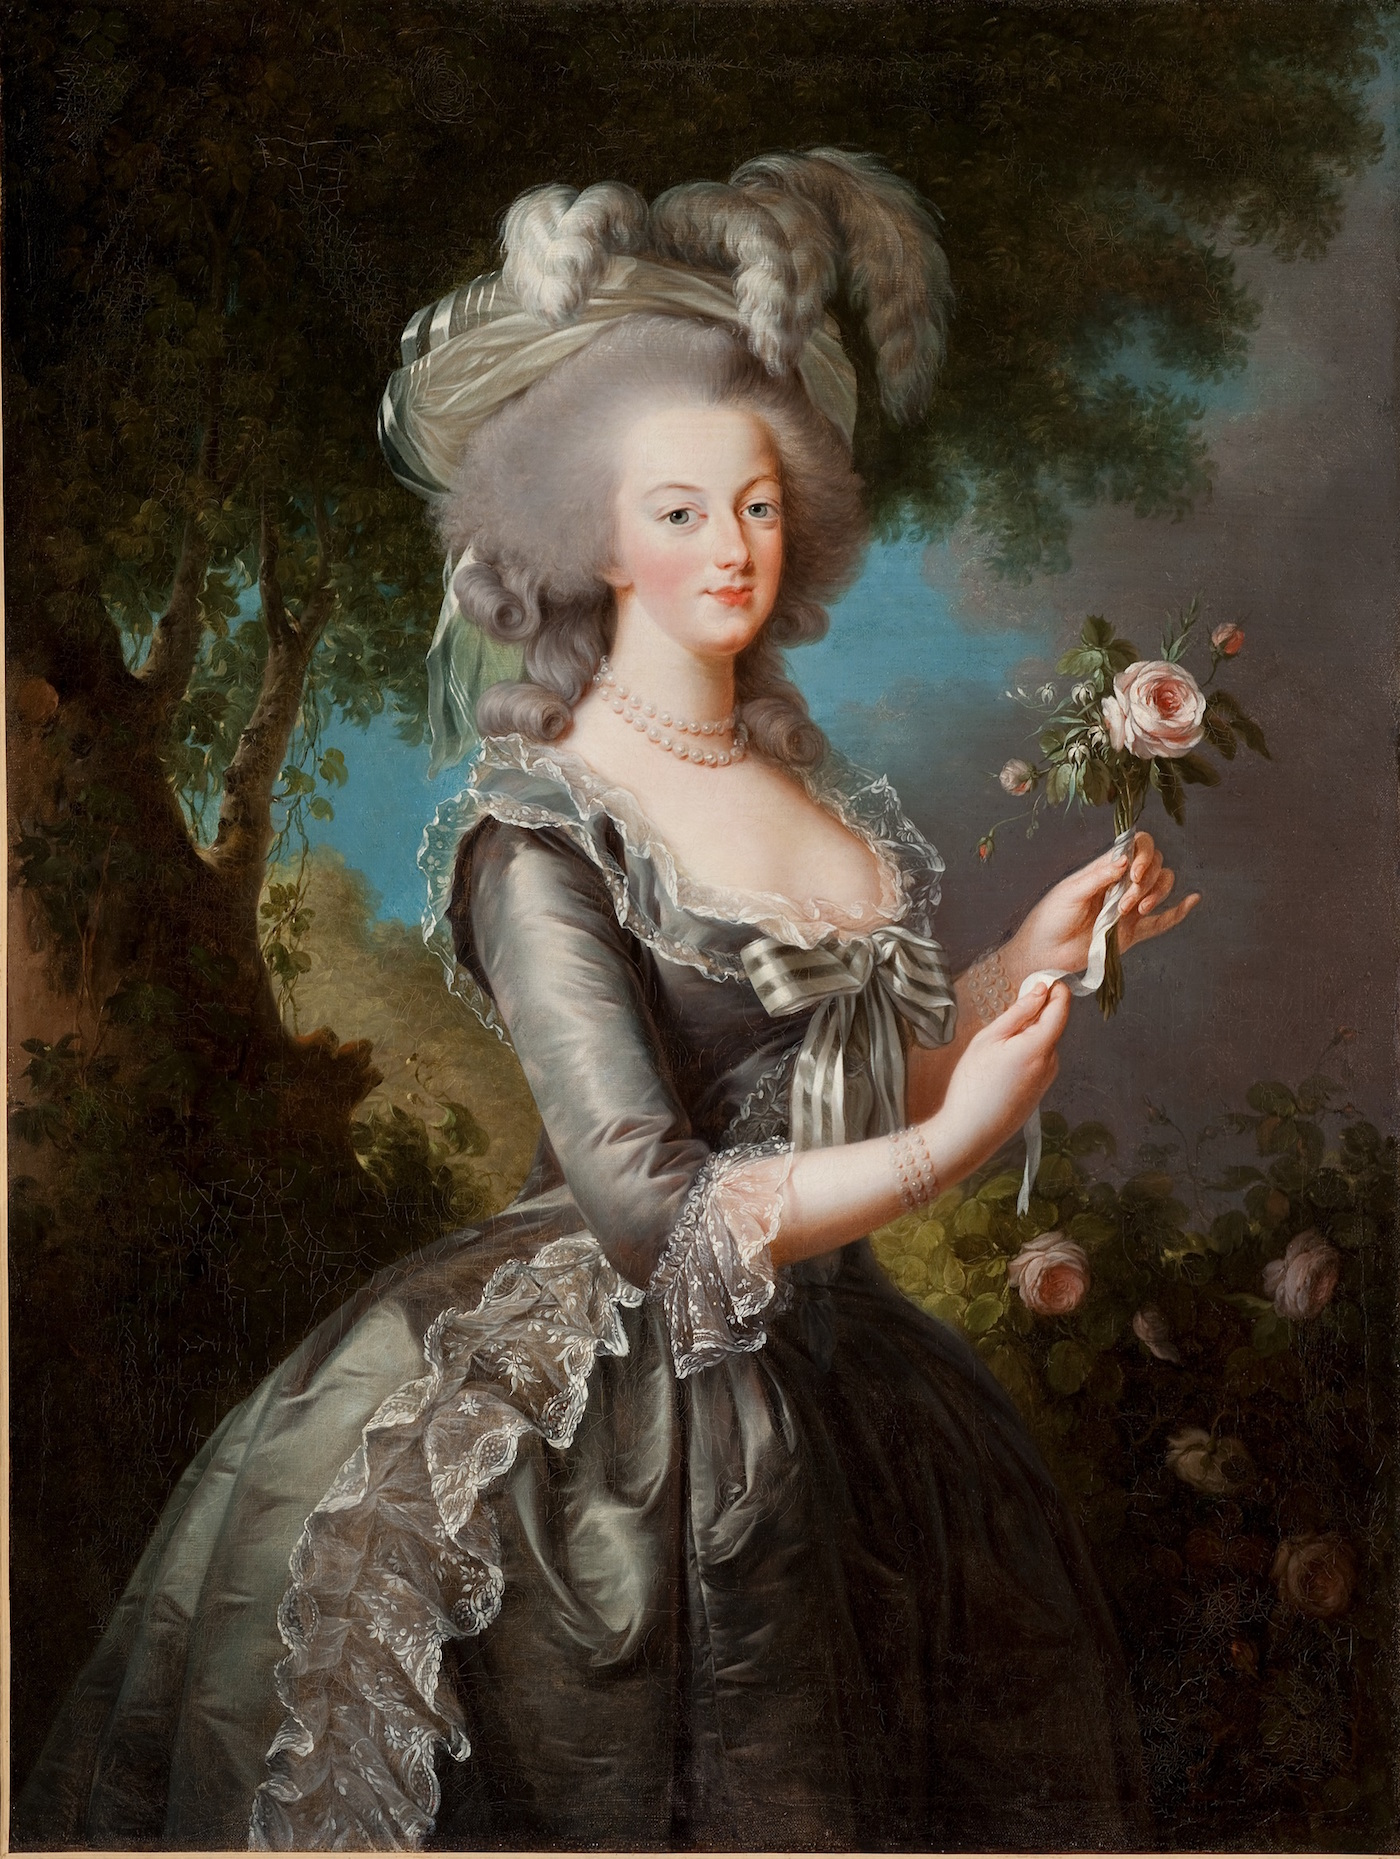 The Praise and Prejudices Vigée Le Brun Faced in Her